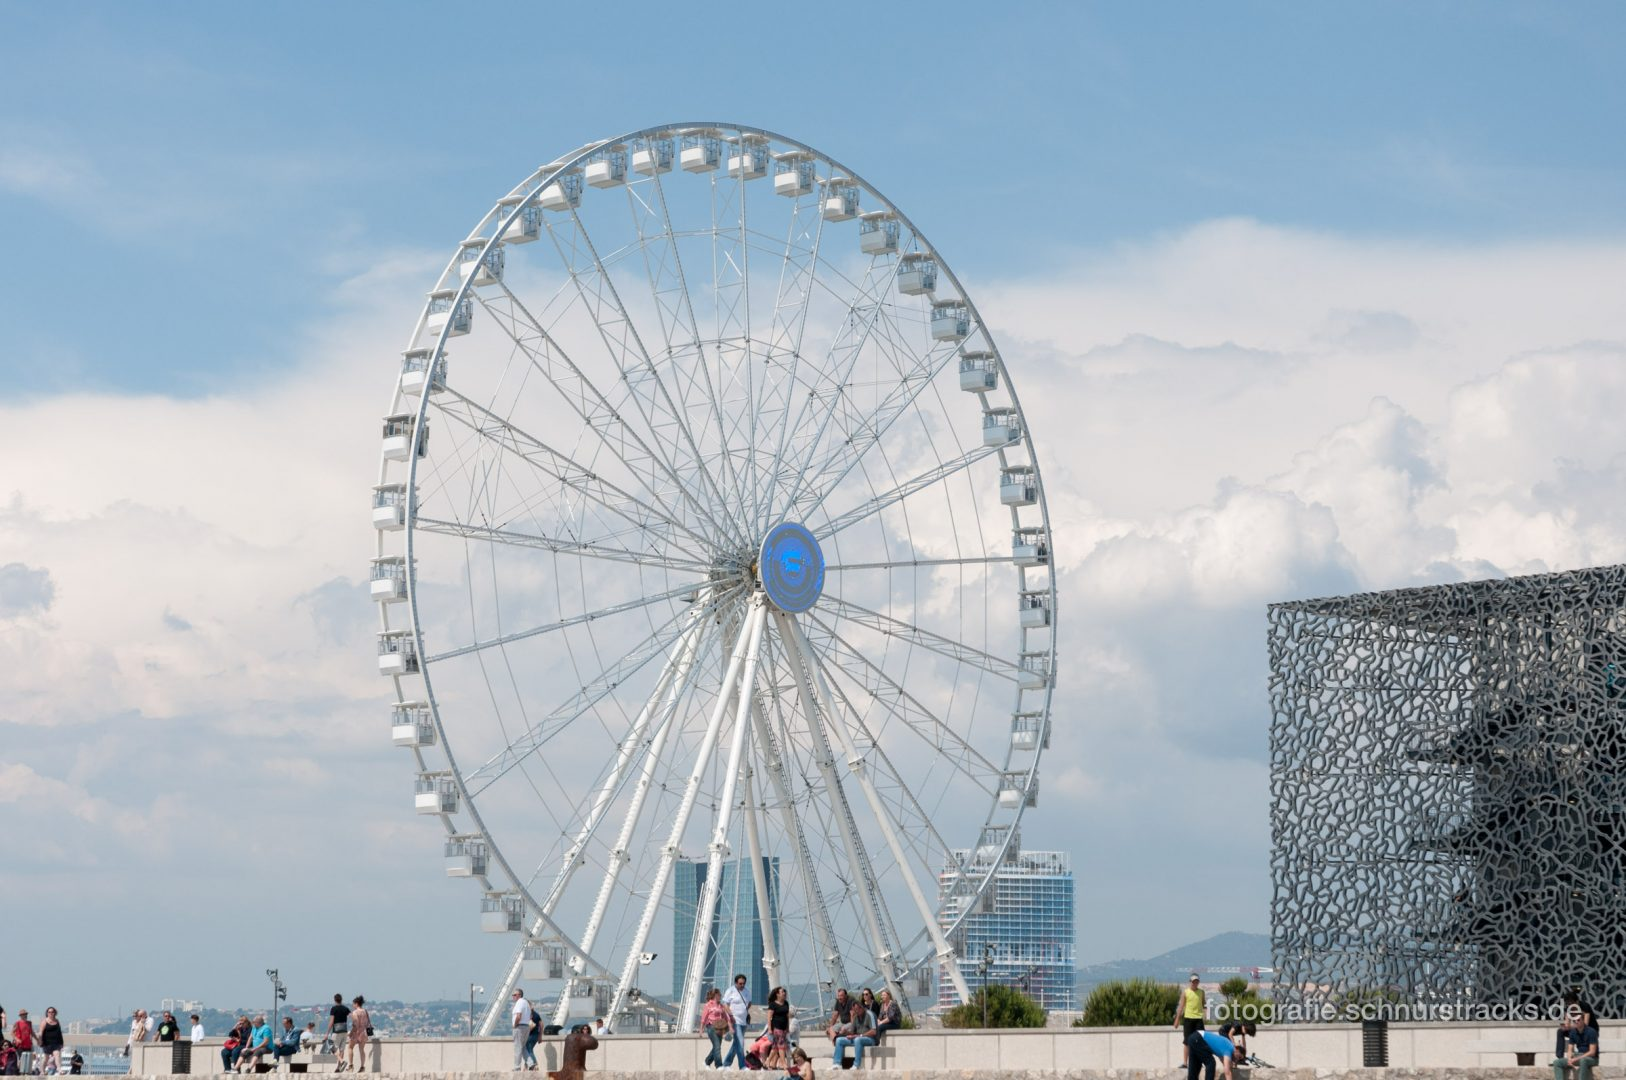 Riesenrad am MUCEM in Marseille #1172